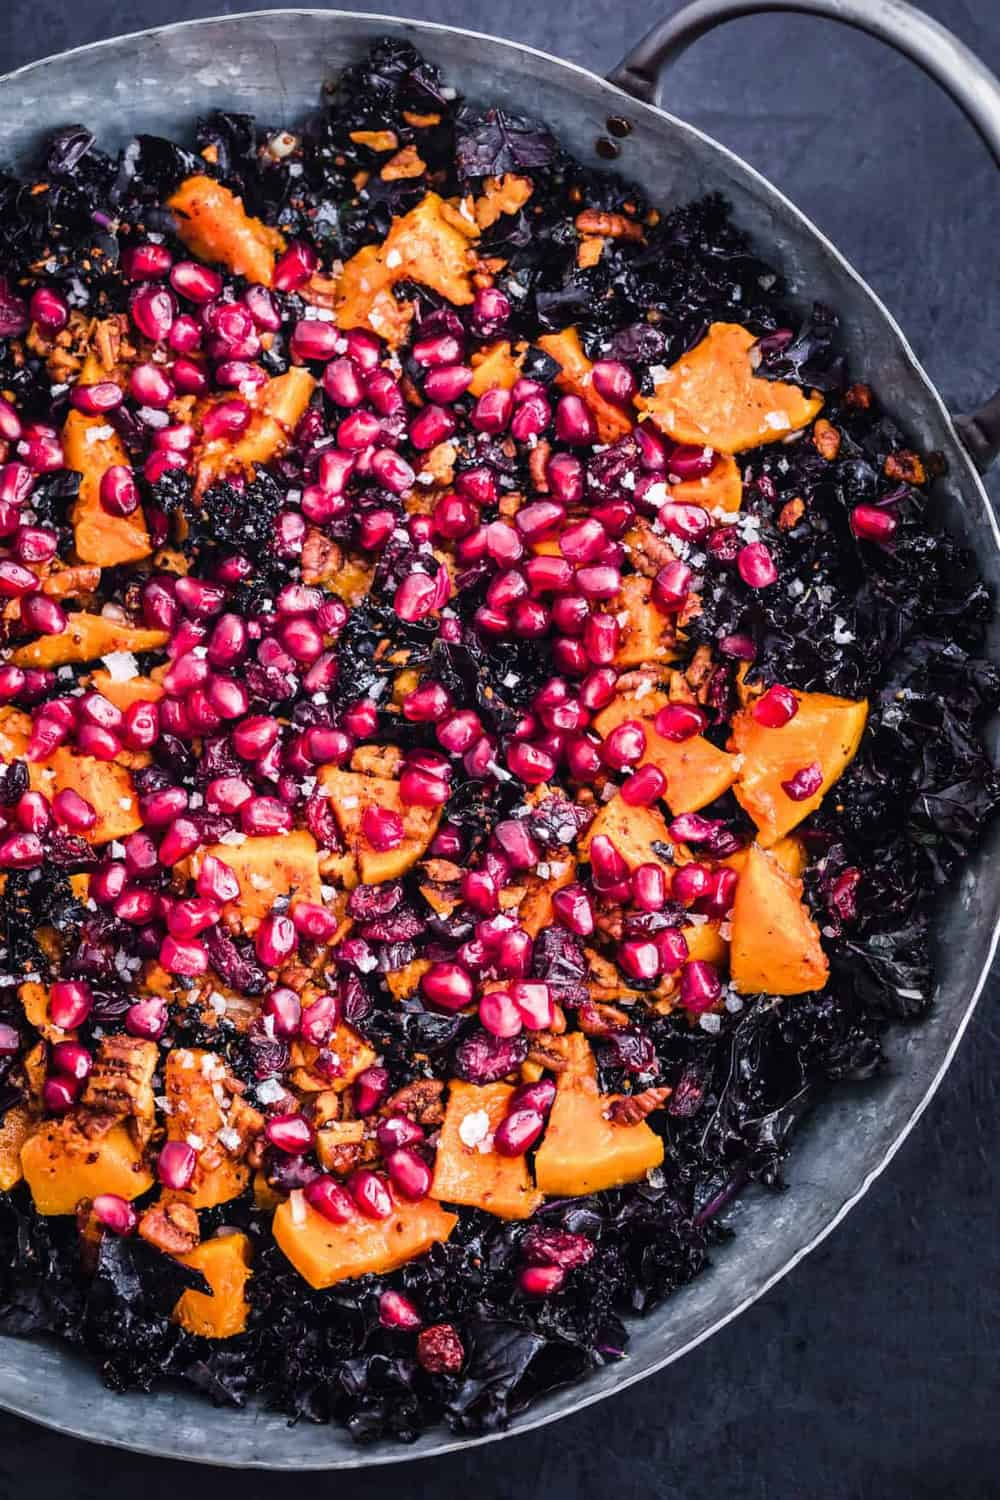 The final assembled salad with kale, squash, pecans, cranberries and pomegranates in a silver serving bowl.